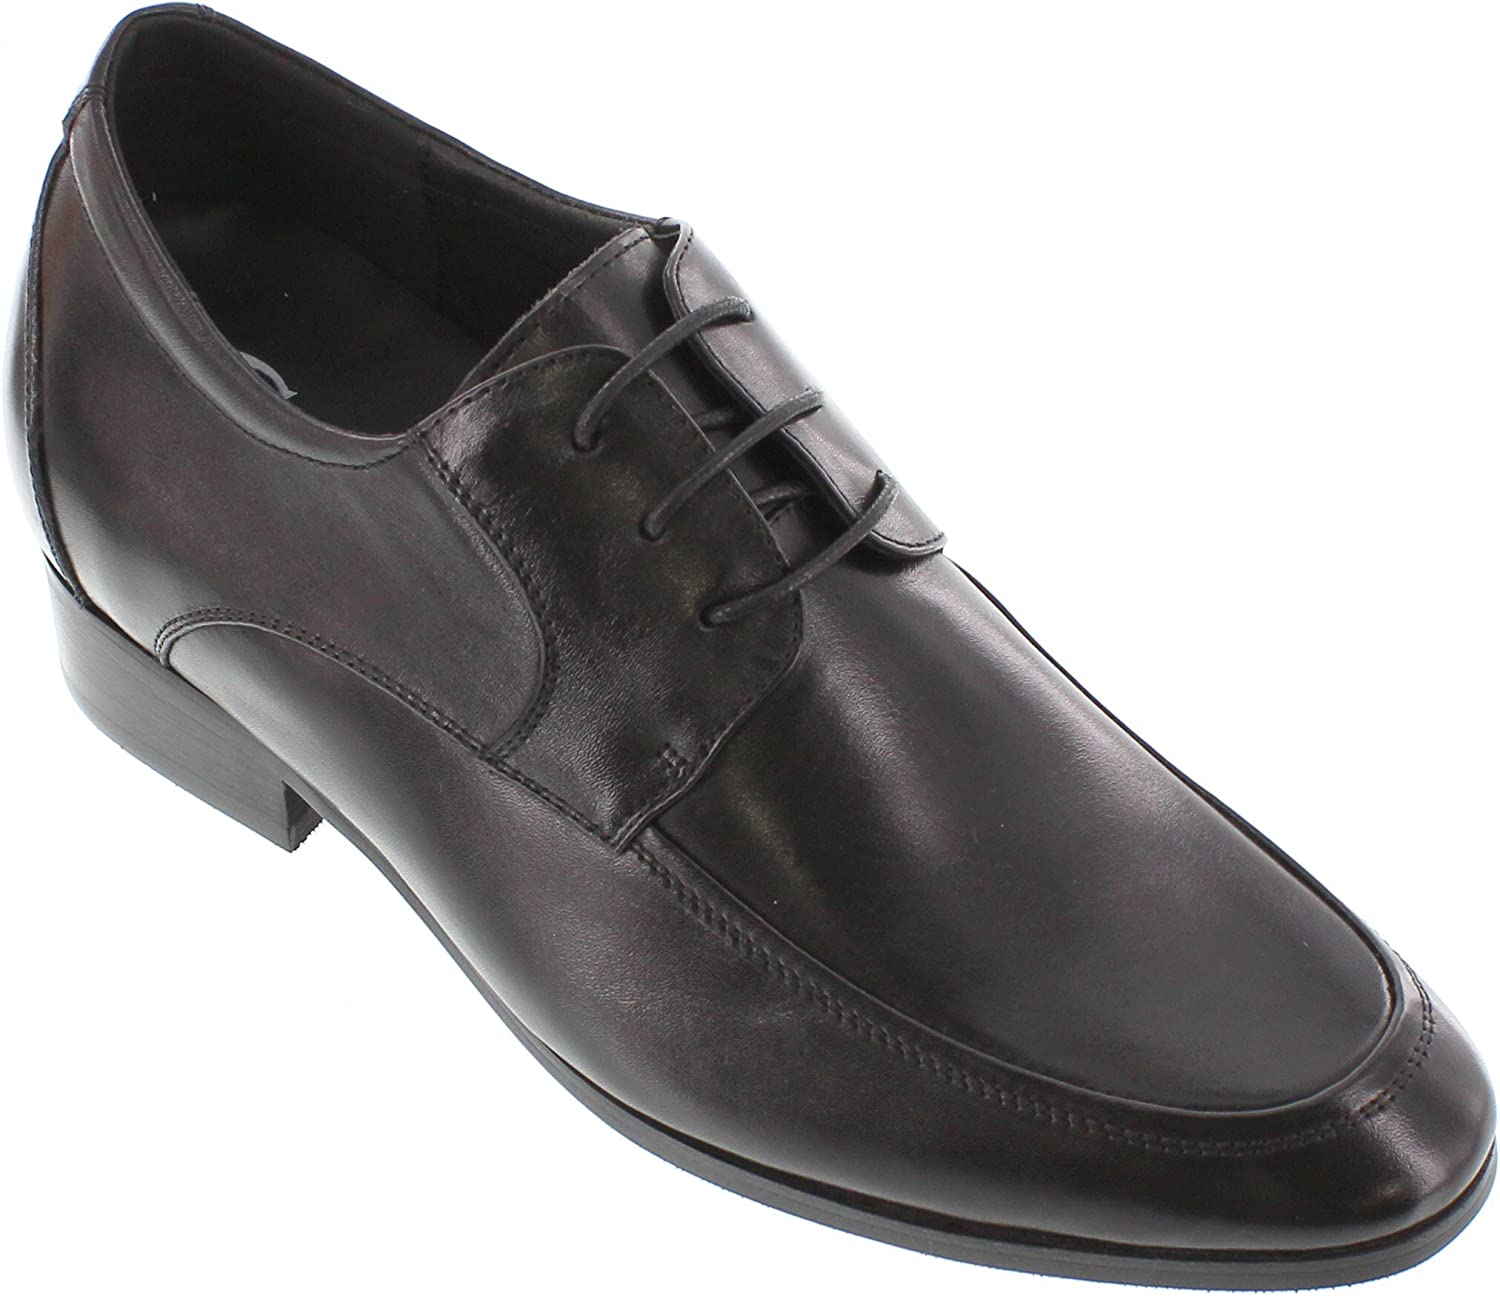 CALTO Men's Invisible Height Increasing Elevator Dress shoes - Black Leather Lace-up Lightweight Formal Loafers - 2.8 Inches Taller - G6175